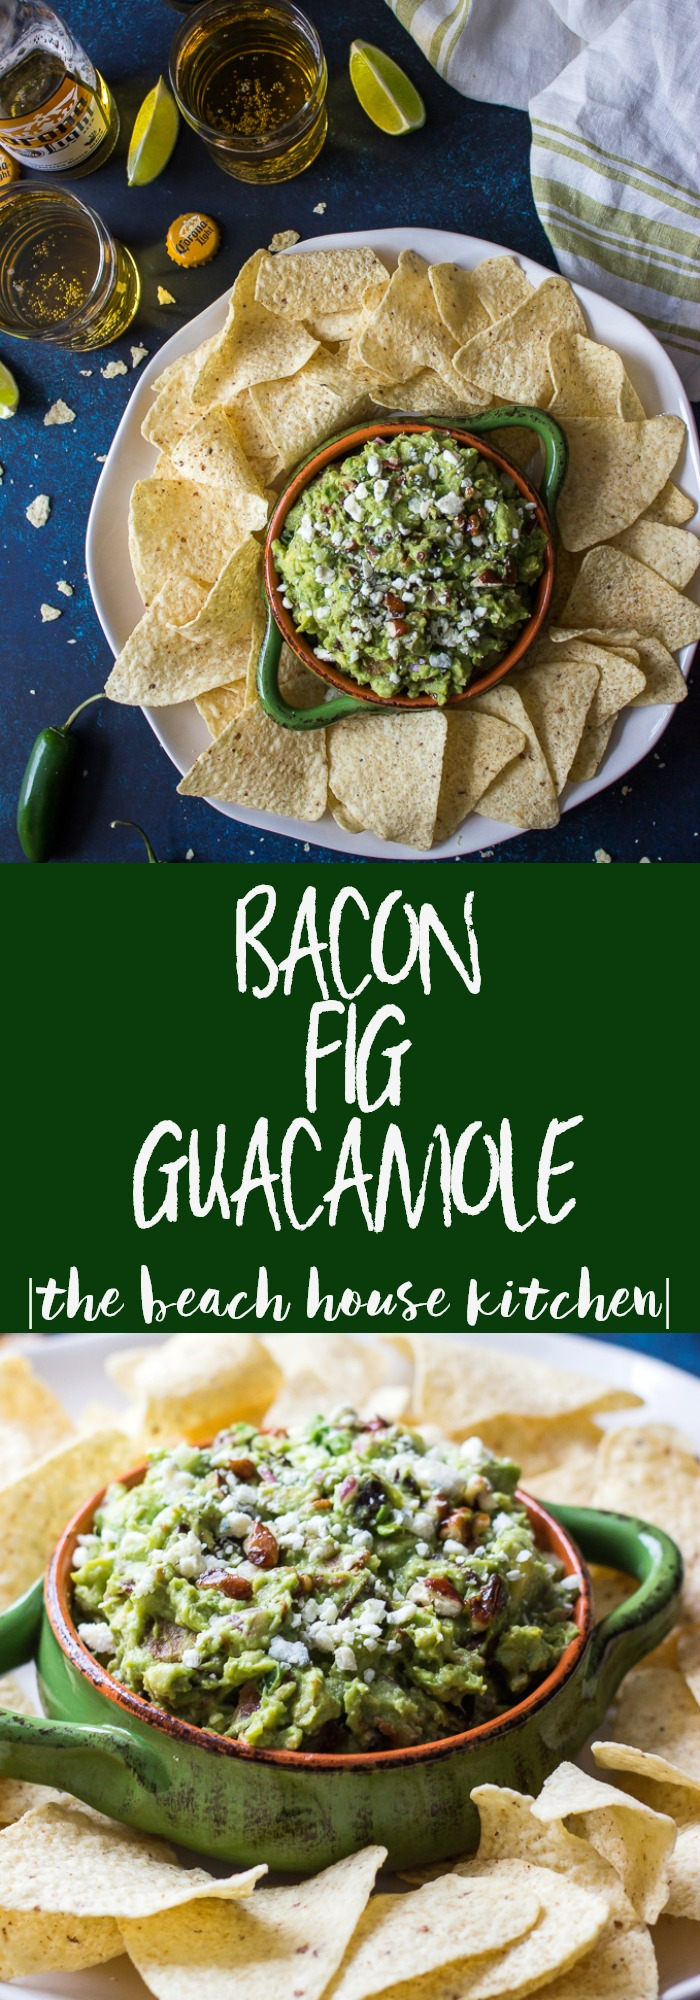 Bacon Fig Guacamole